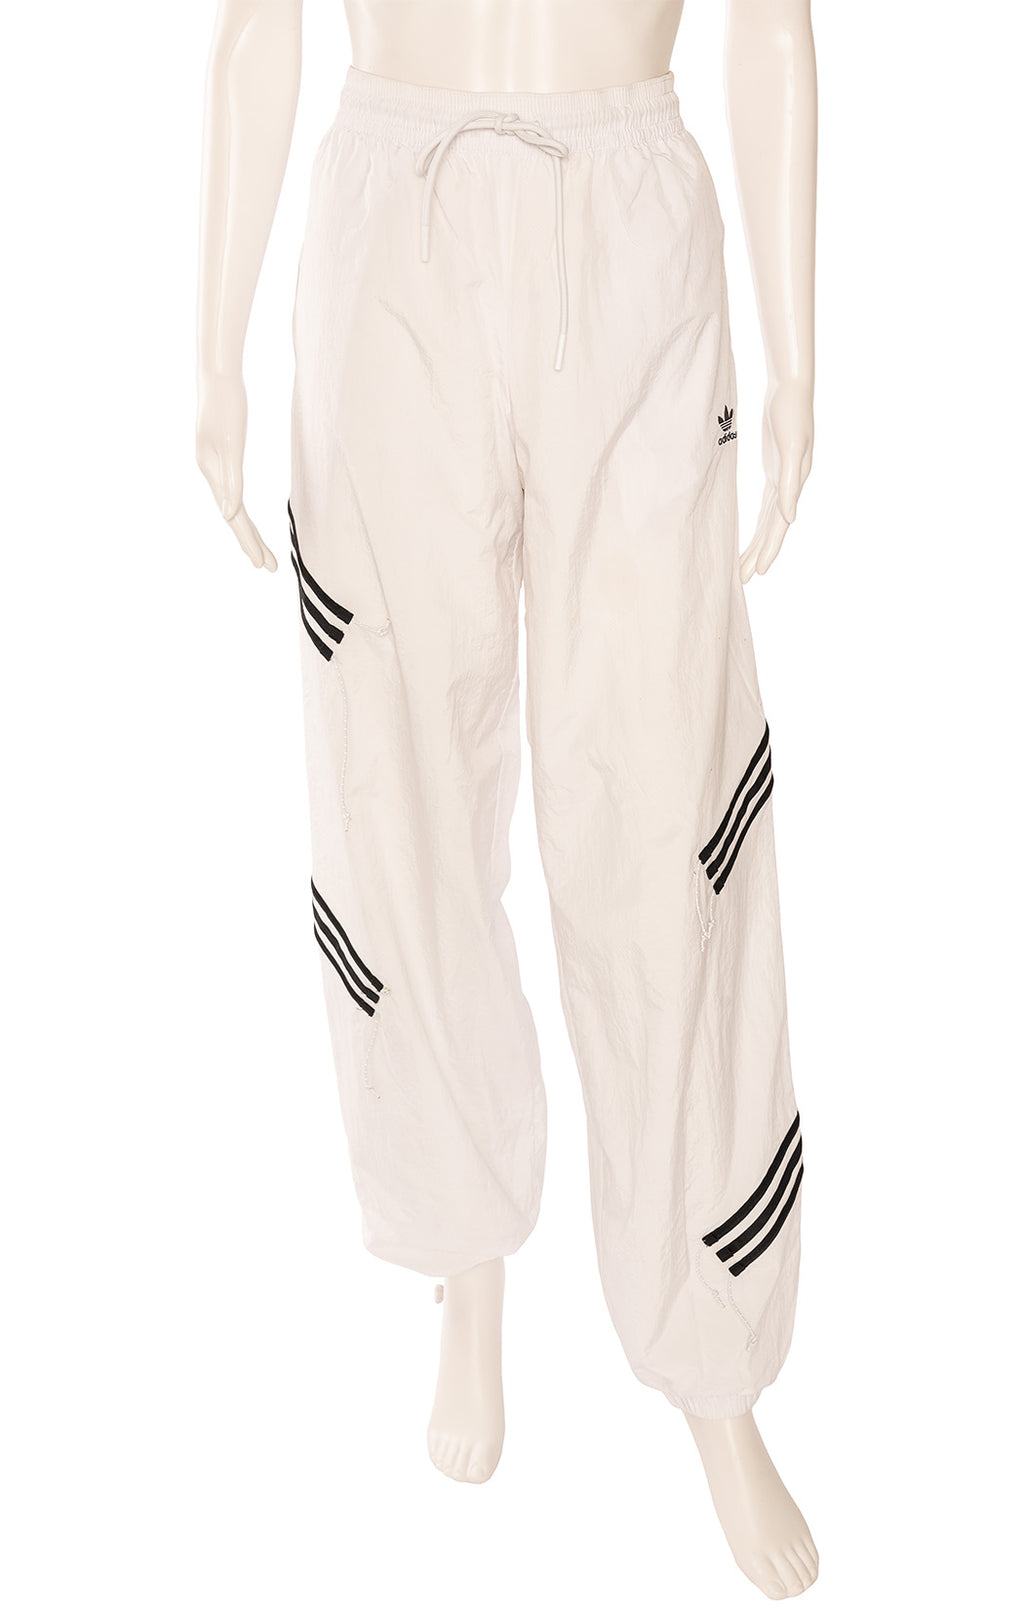 White with black stripe full Nylon like track pant